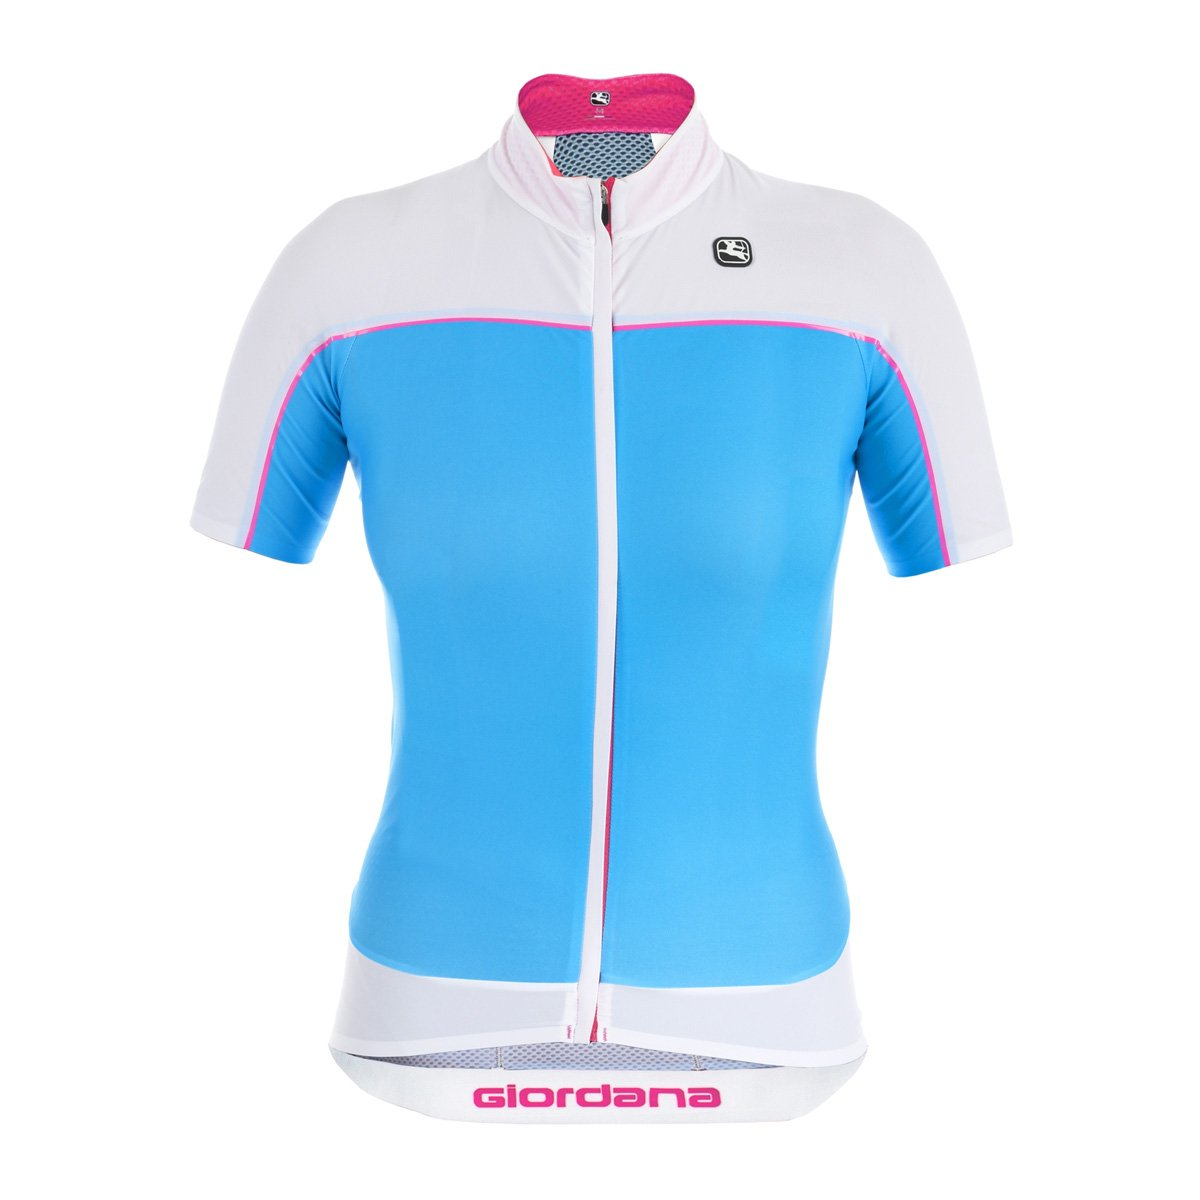 Giordana nx-g Jersey – 半袖 – Women 's B01EV80LFU Large|Turquoise Blue/White Turquoise Blue/White Large